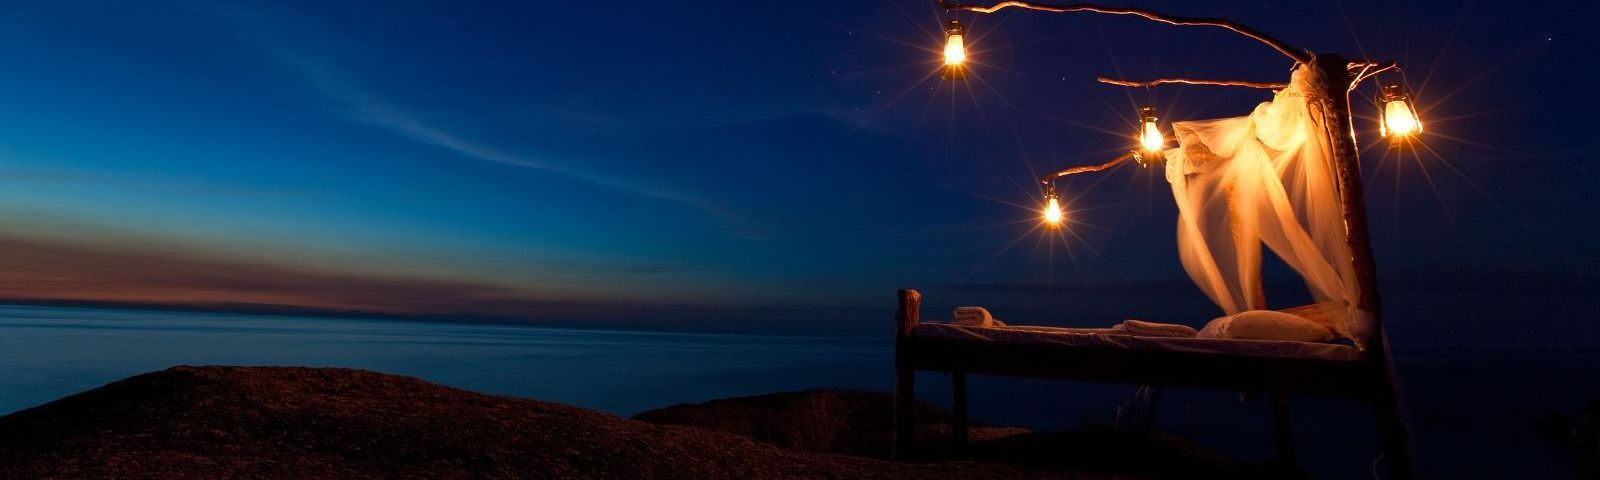 Star bed at Nkwichi Lodge in Lake Malawi, Mozambique